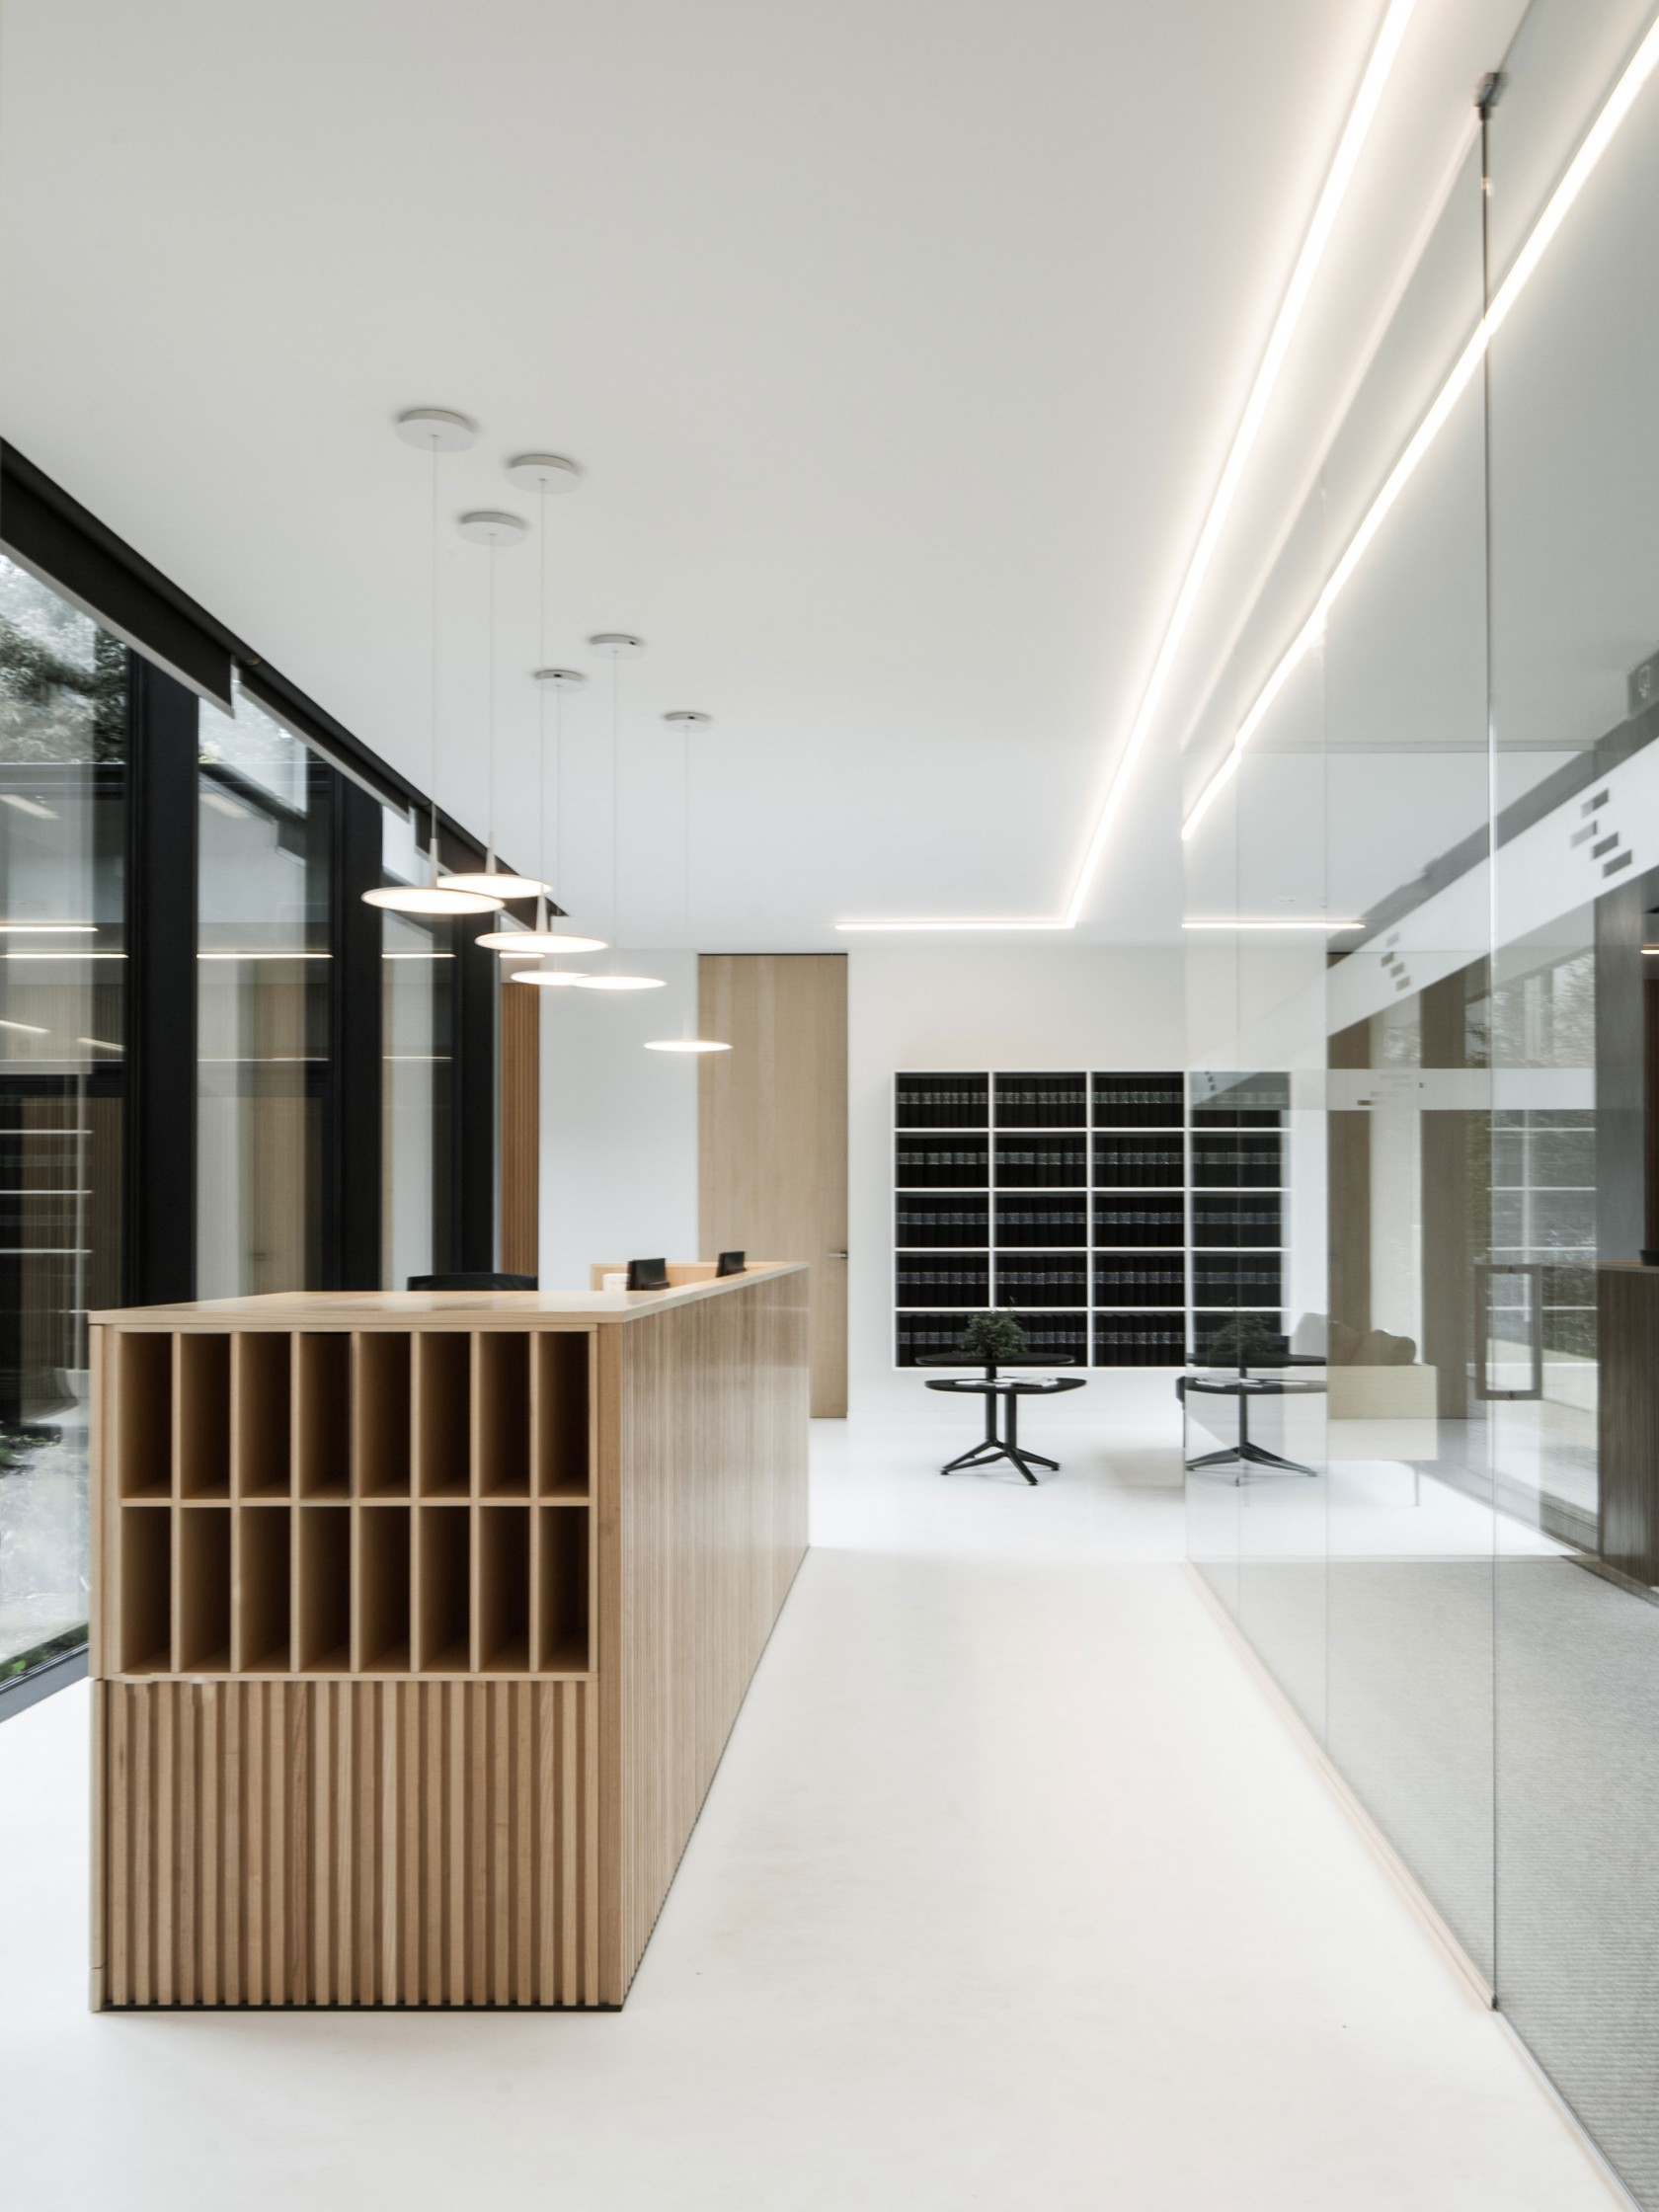 Abscis Architecten - reception area with desk - photo Jeroen Verrecht